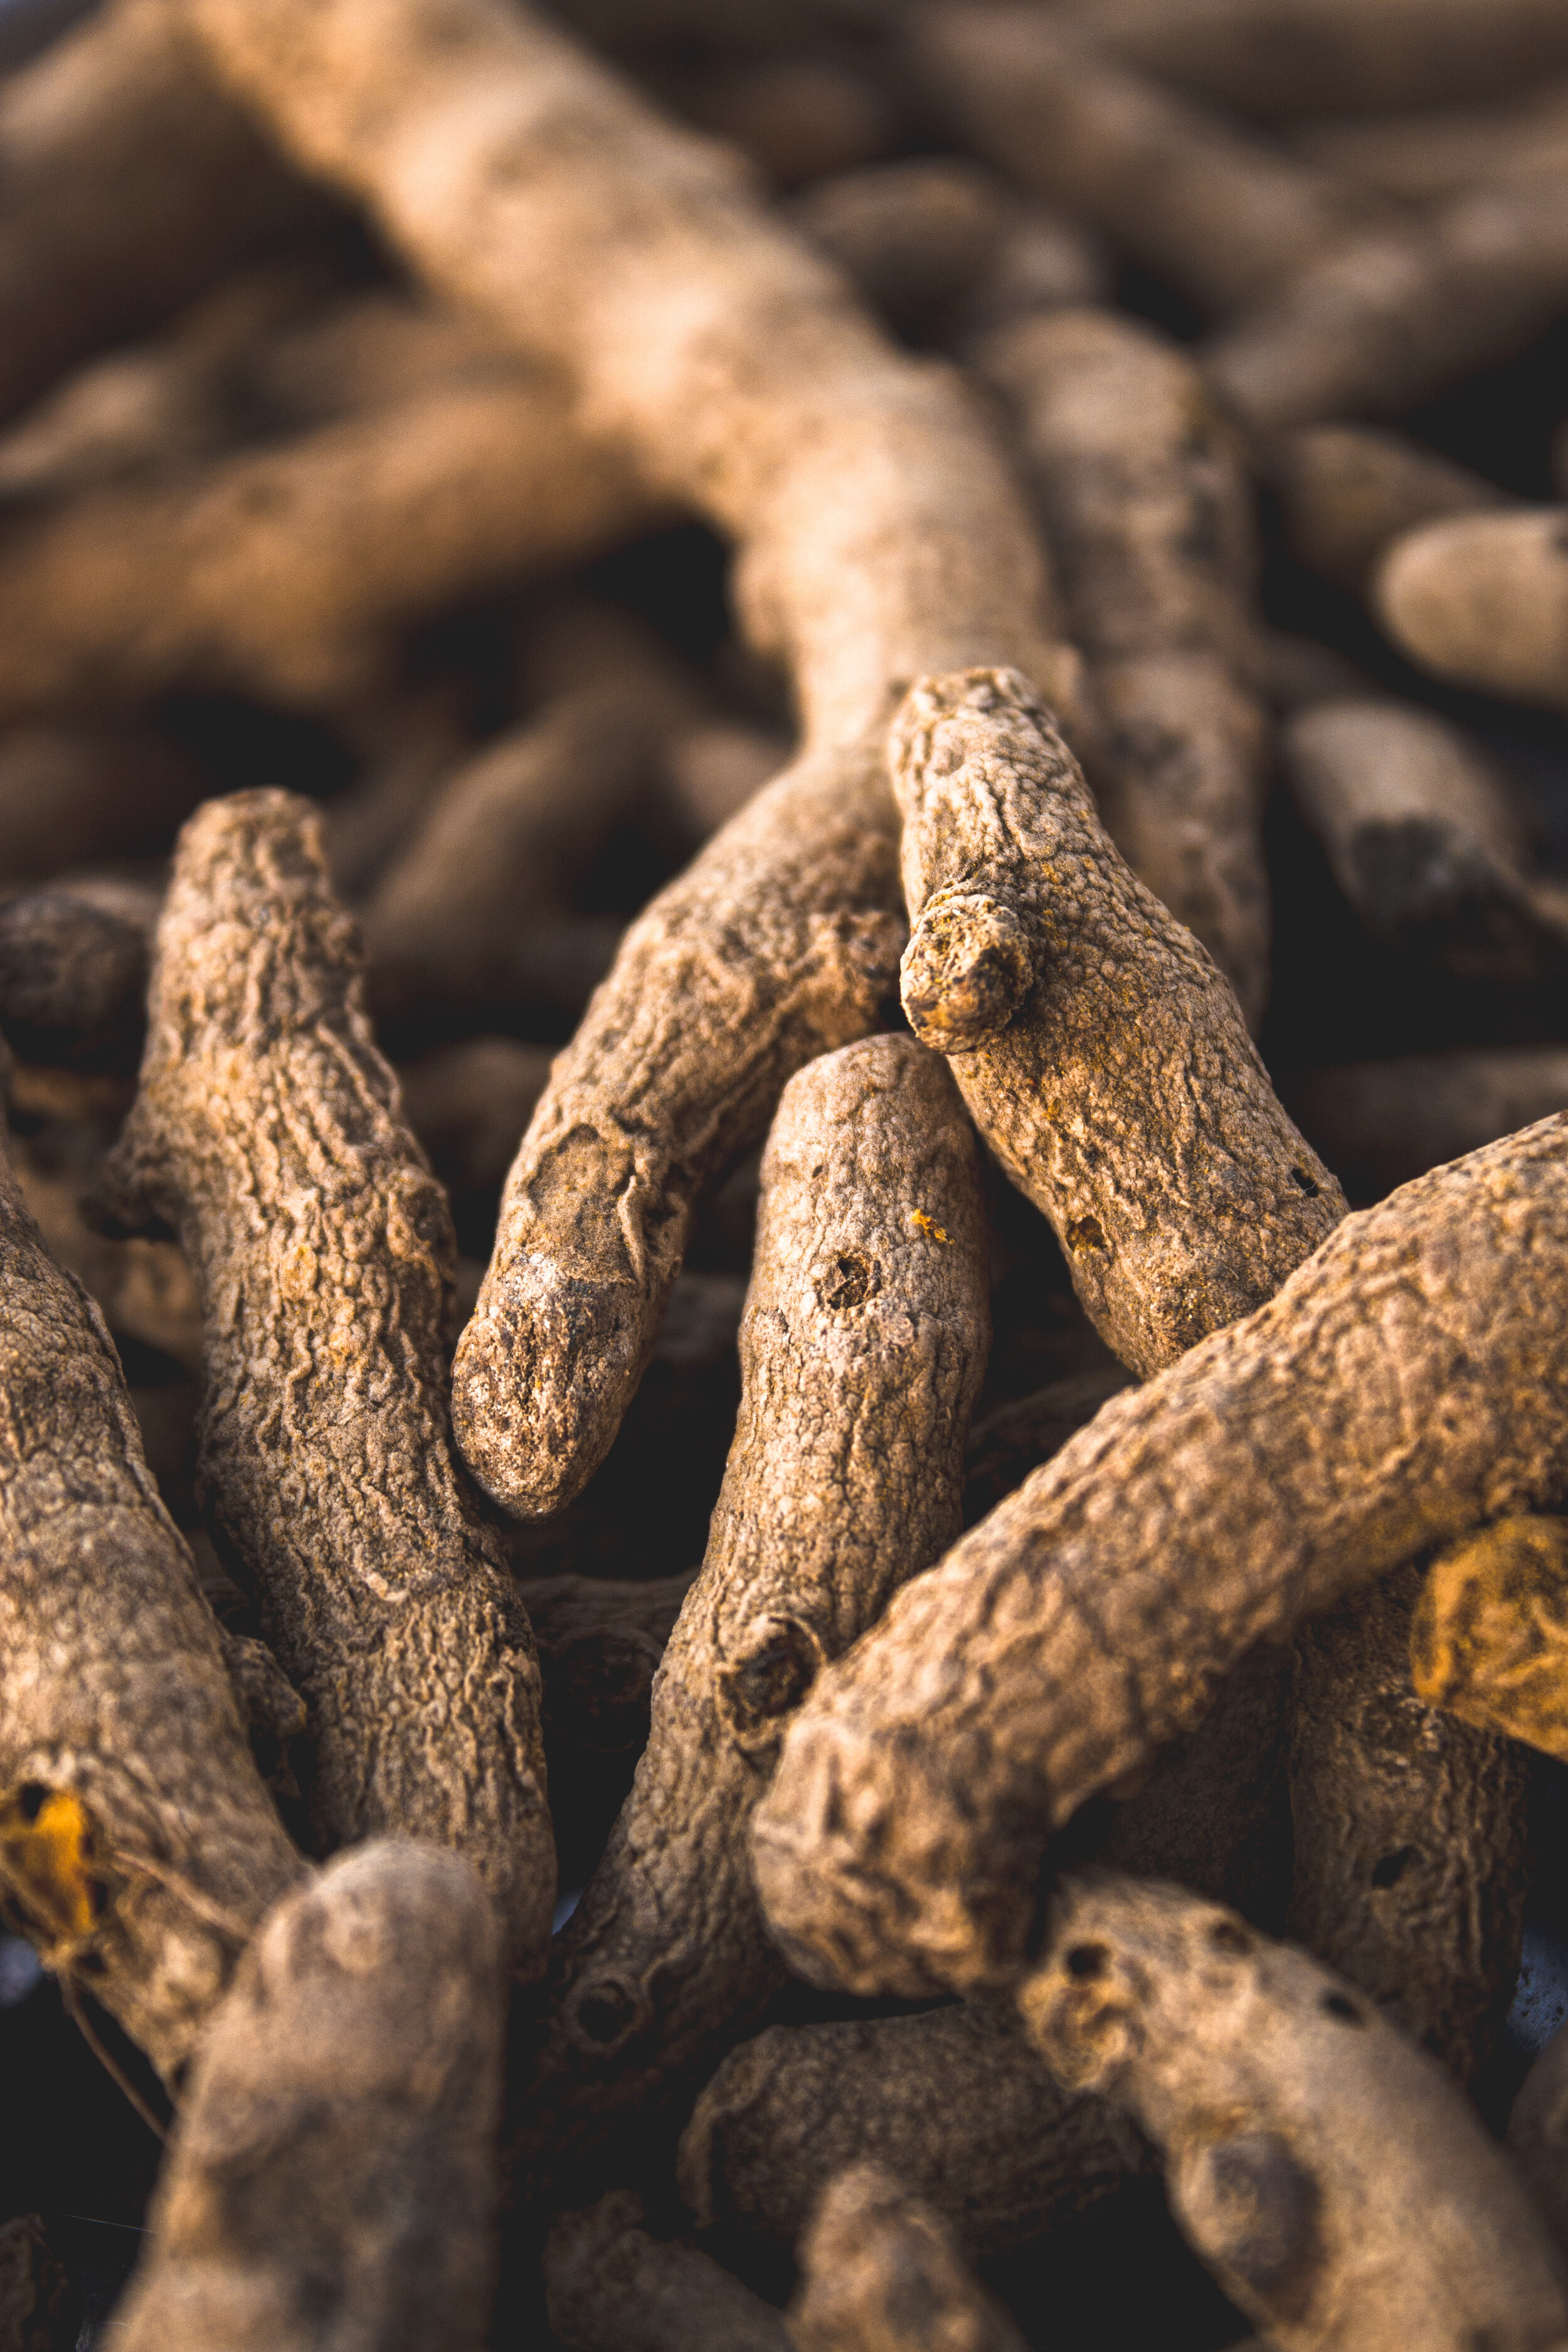 this is a close up image of turmeric root